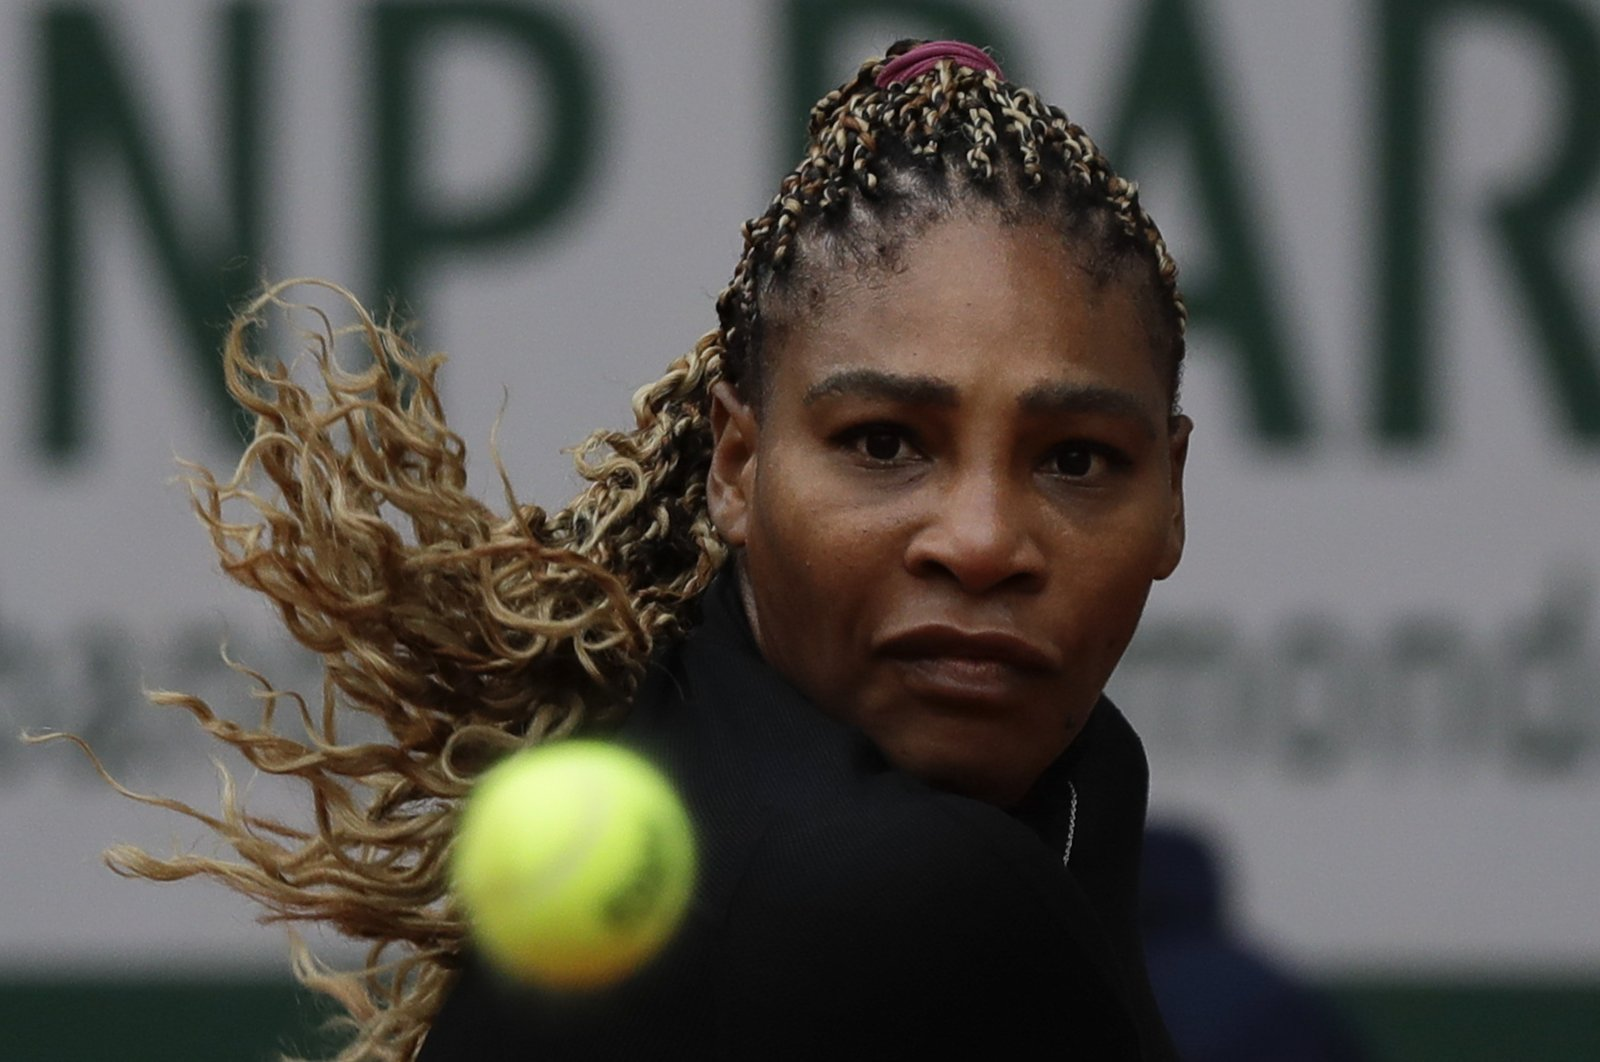 Serena Williams before she plays a shot against Kristie Ahn in the first round match of the French Open, in Paris, France, Sept. 28, 2020. (AP Photo)